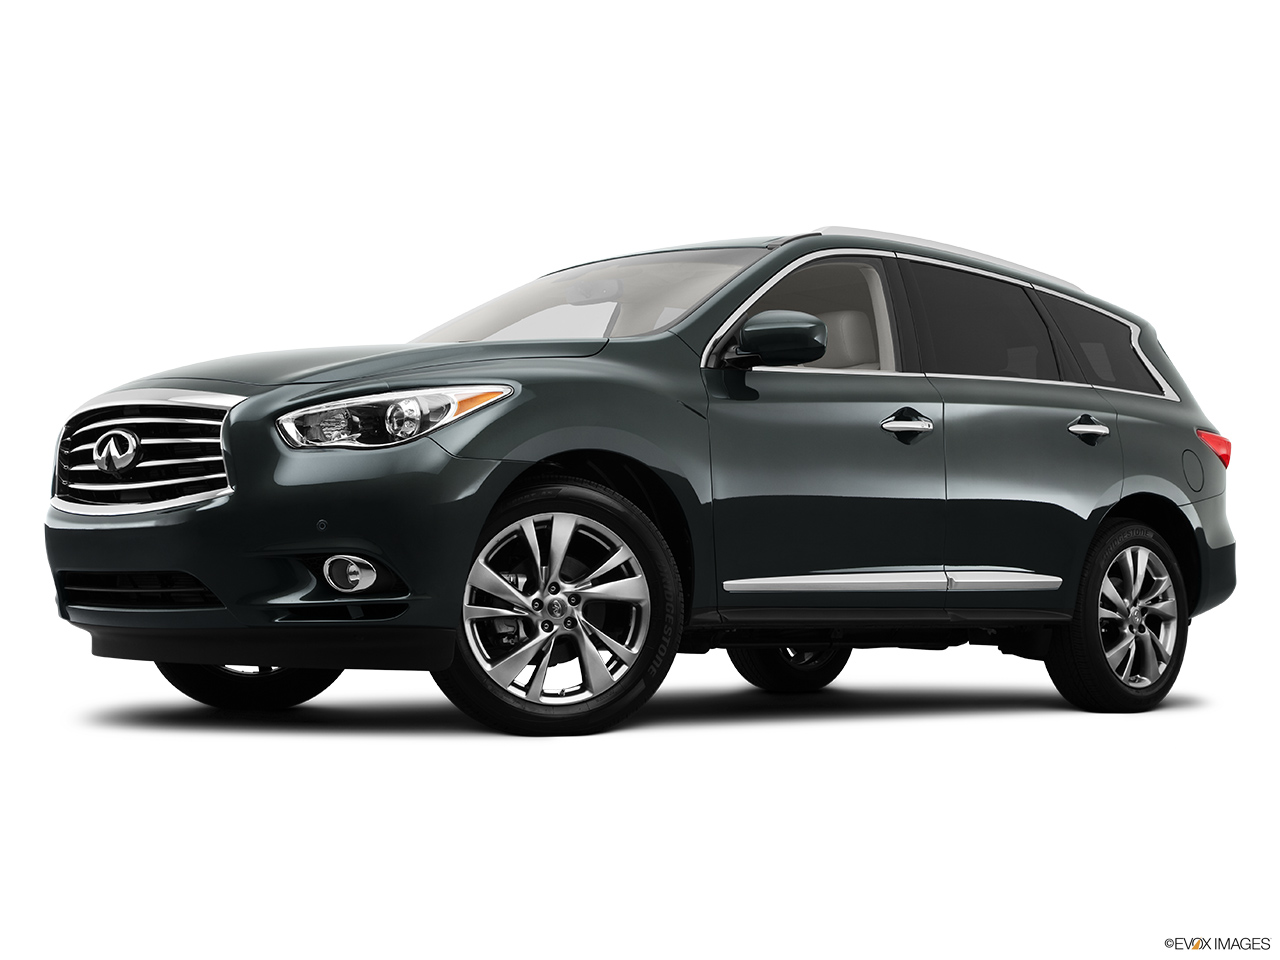 2013 Infiniti JX JX35 Low/wide front 5/8.